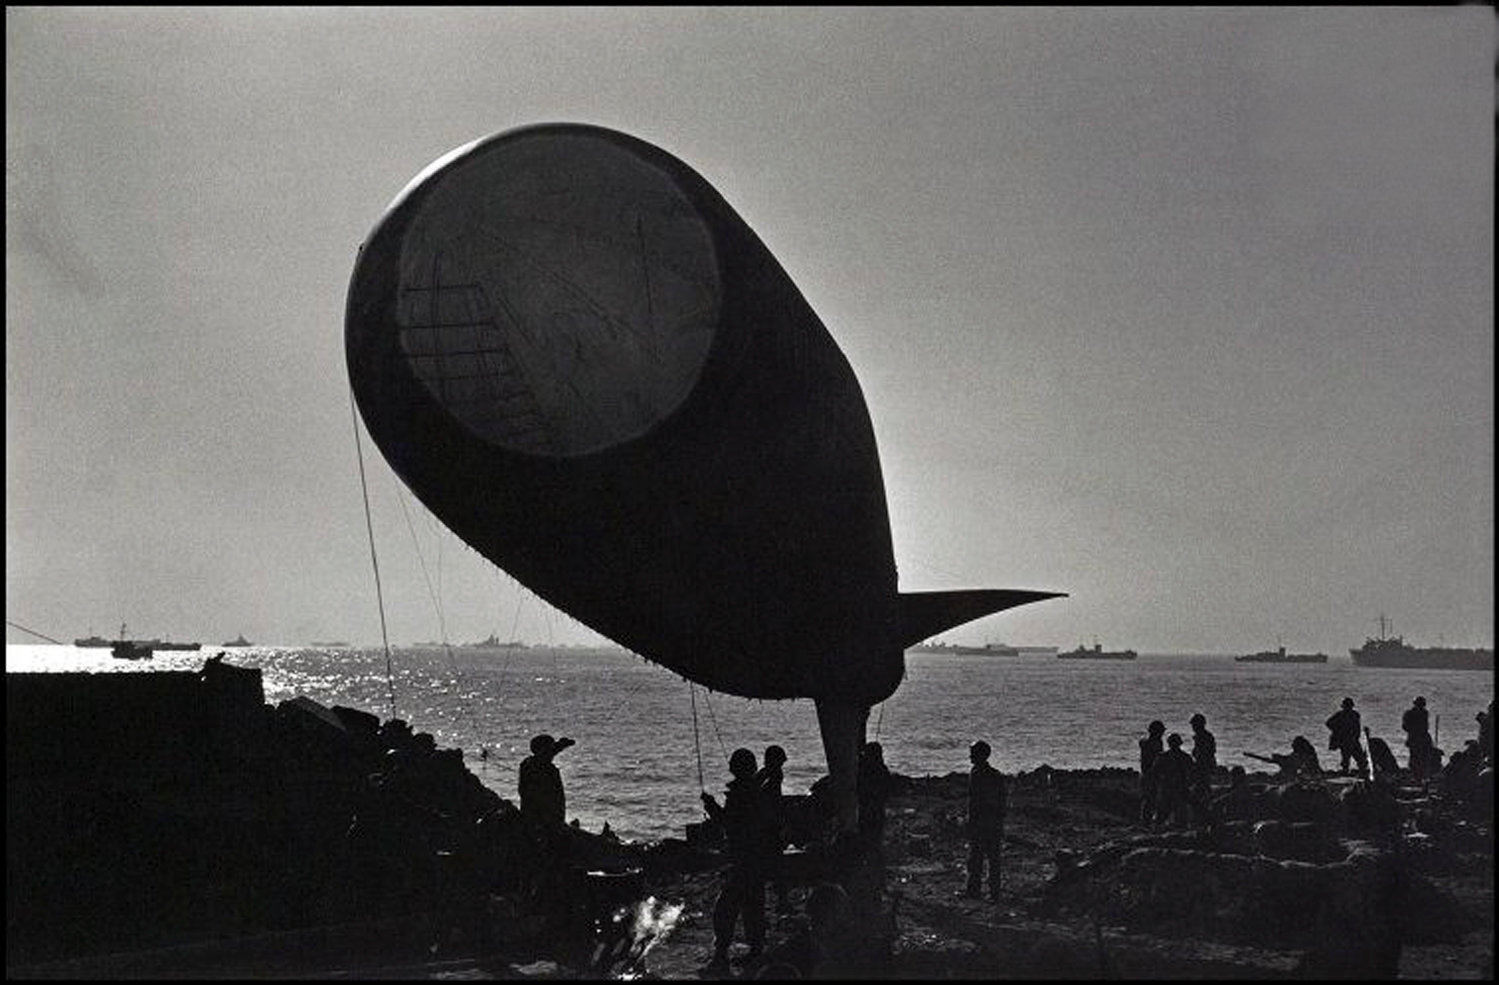 Soldiers worked to inflate a barrage balloon at the Anzio beachhead in 1944 to protect against air attacks. Albarella had been assigned to balloon duty for the invasion.